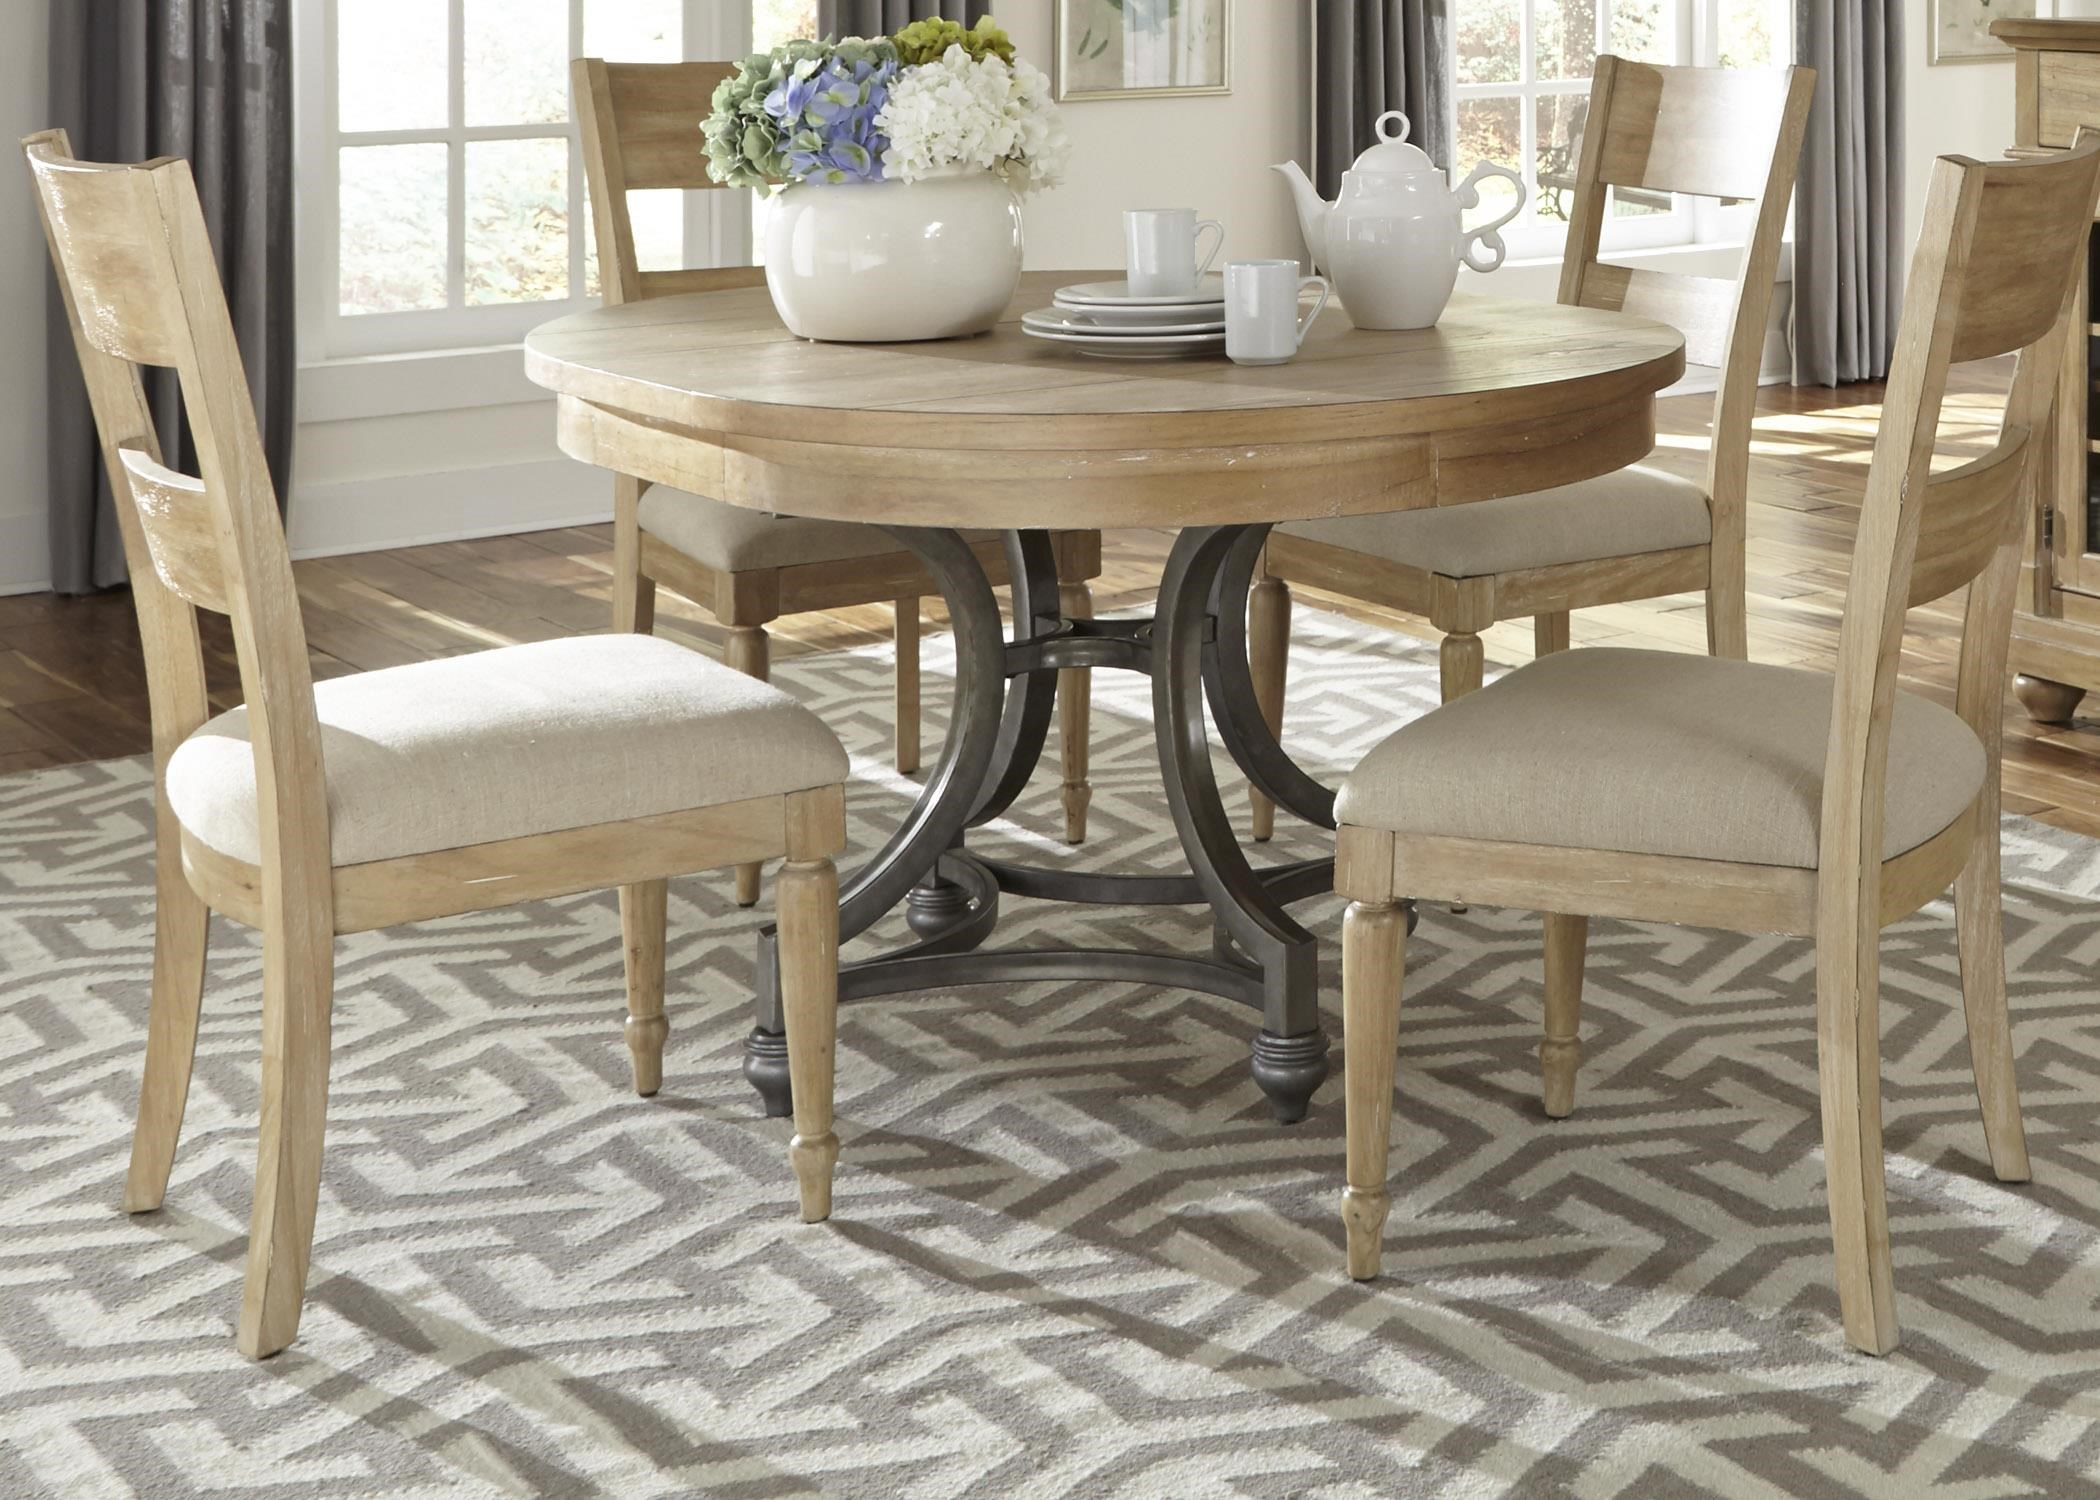 Liberty Furniture Harbor View 531 DR 5ROS Round Table and